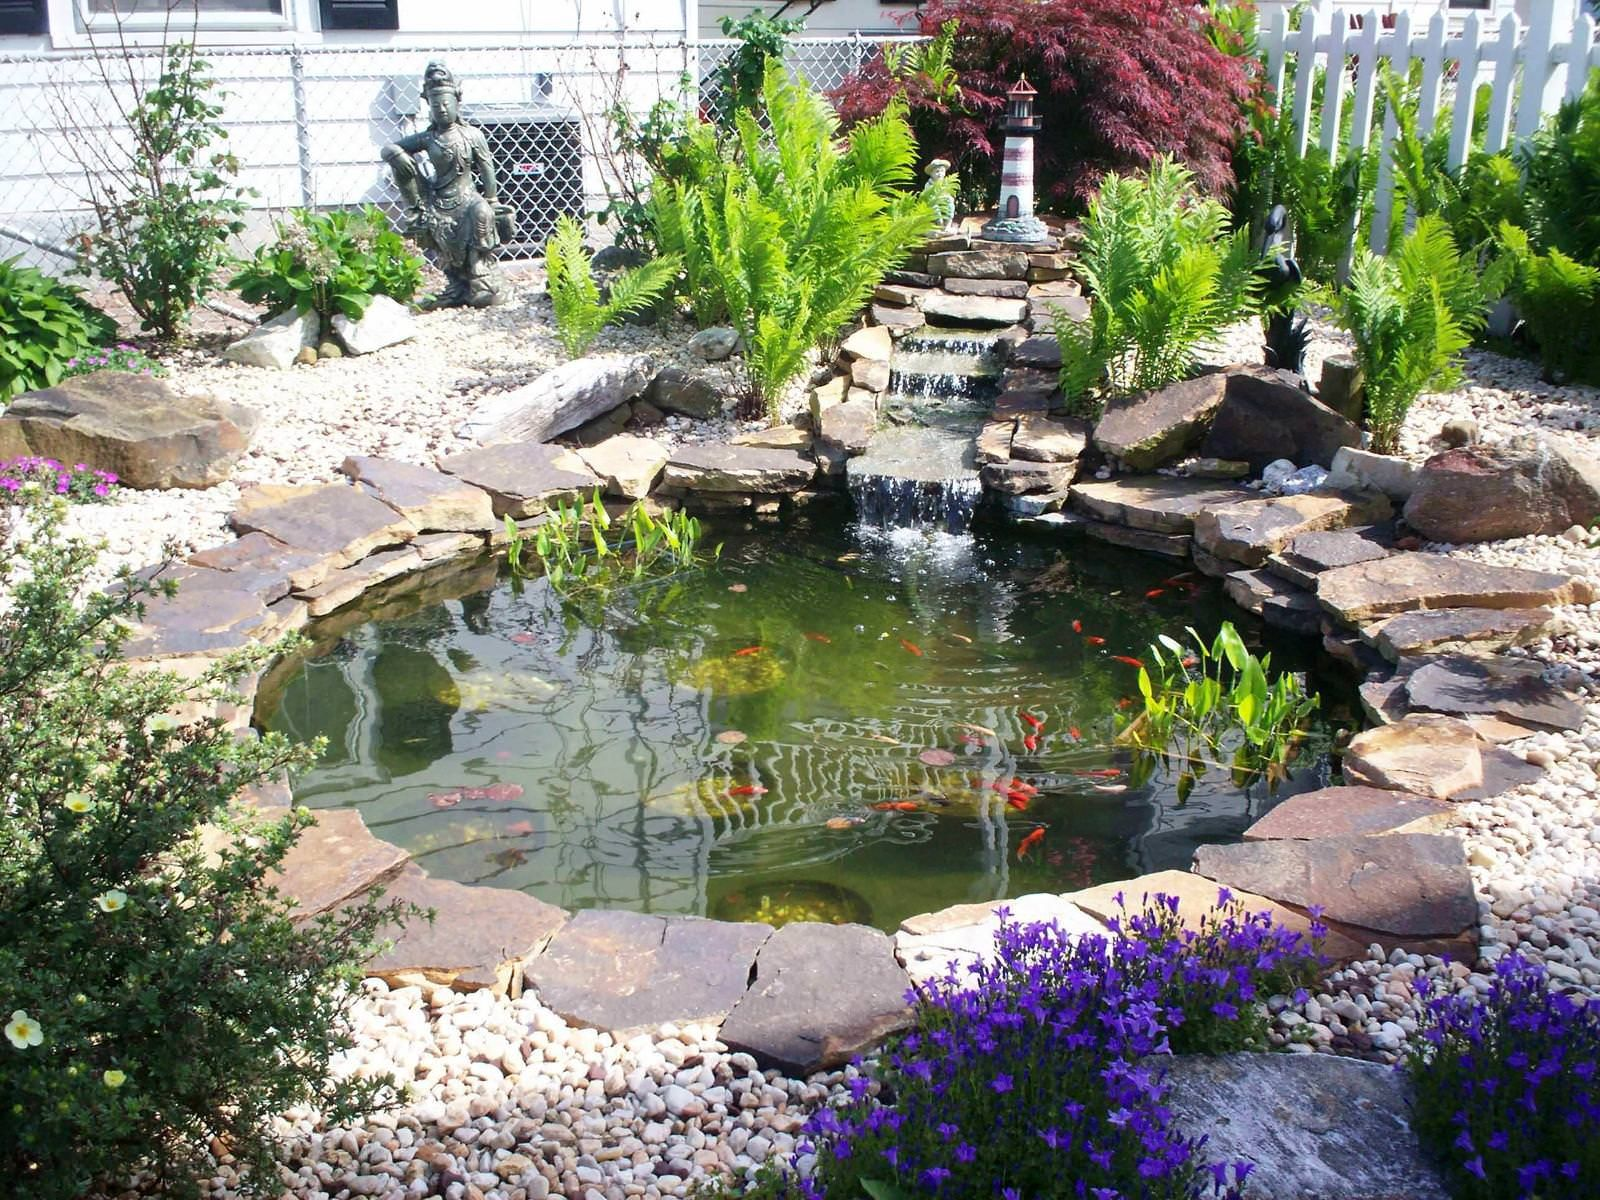 Small garden or backyard aquarium ideas practic ideas for Outside fish pond ideas